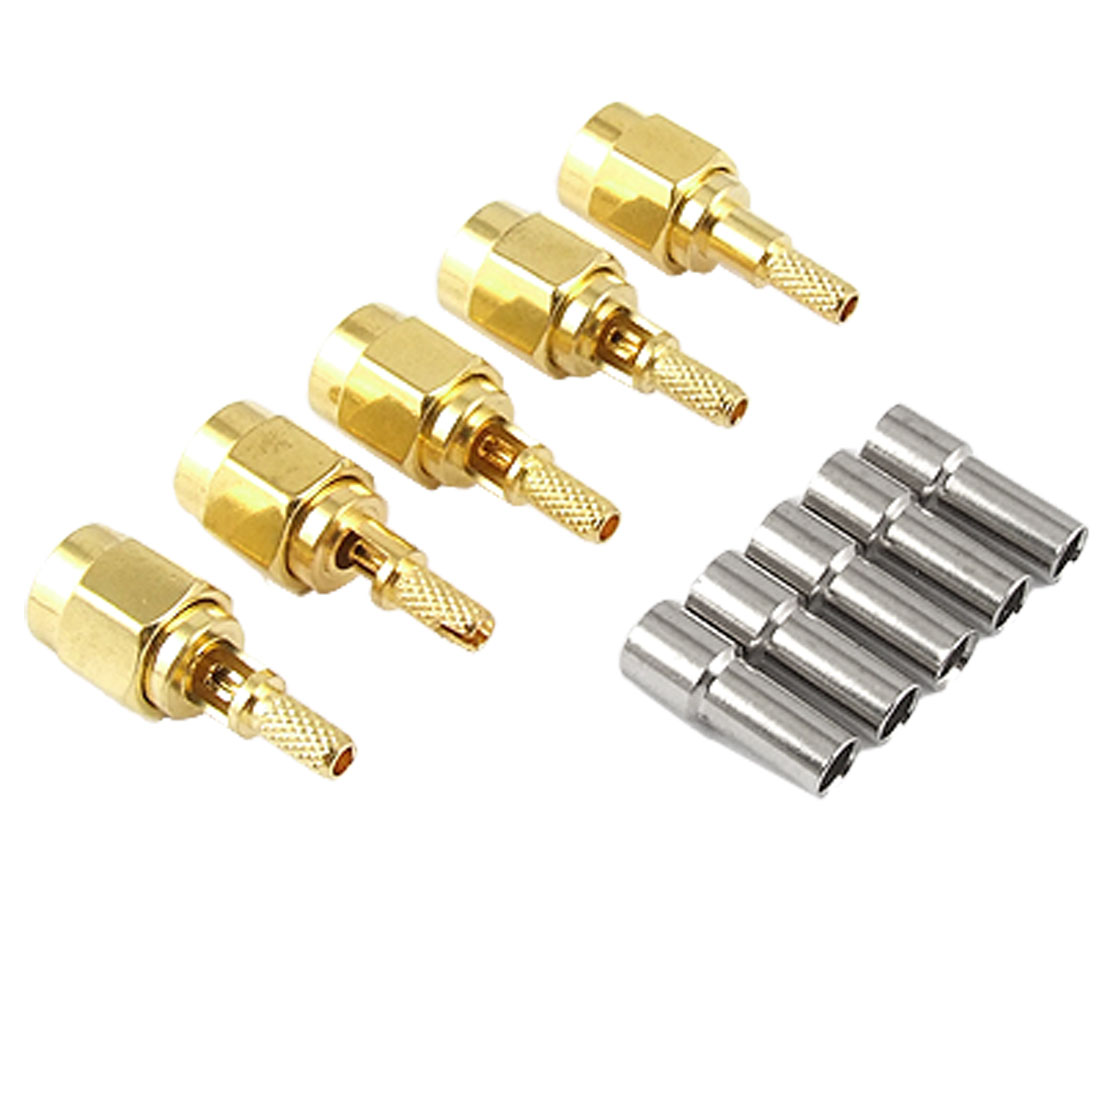 5pcs Gold Tone Plated SMA Male RG316 RG174 Crimp Coaxial Connector